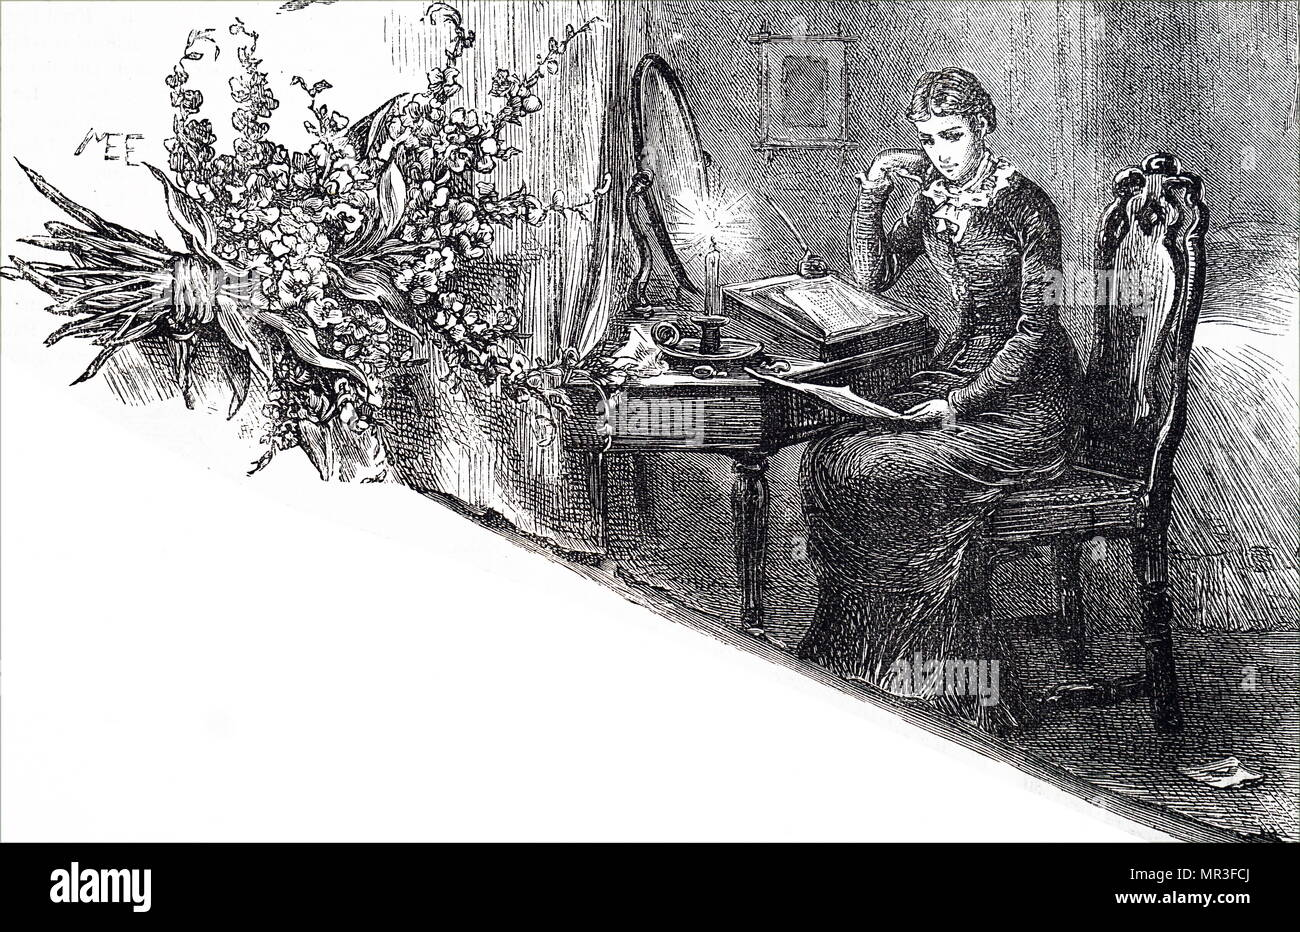 Illustration depicting a young woman reading through a letter she has written with the quill pen in her hand. Illustrated by Mary Ellen Edwards (1838-1934) an English artist. Dated 19th century - Stock Image